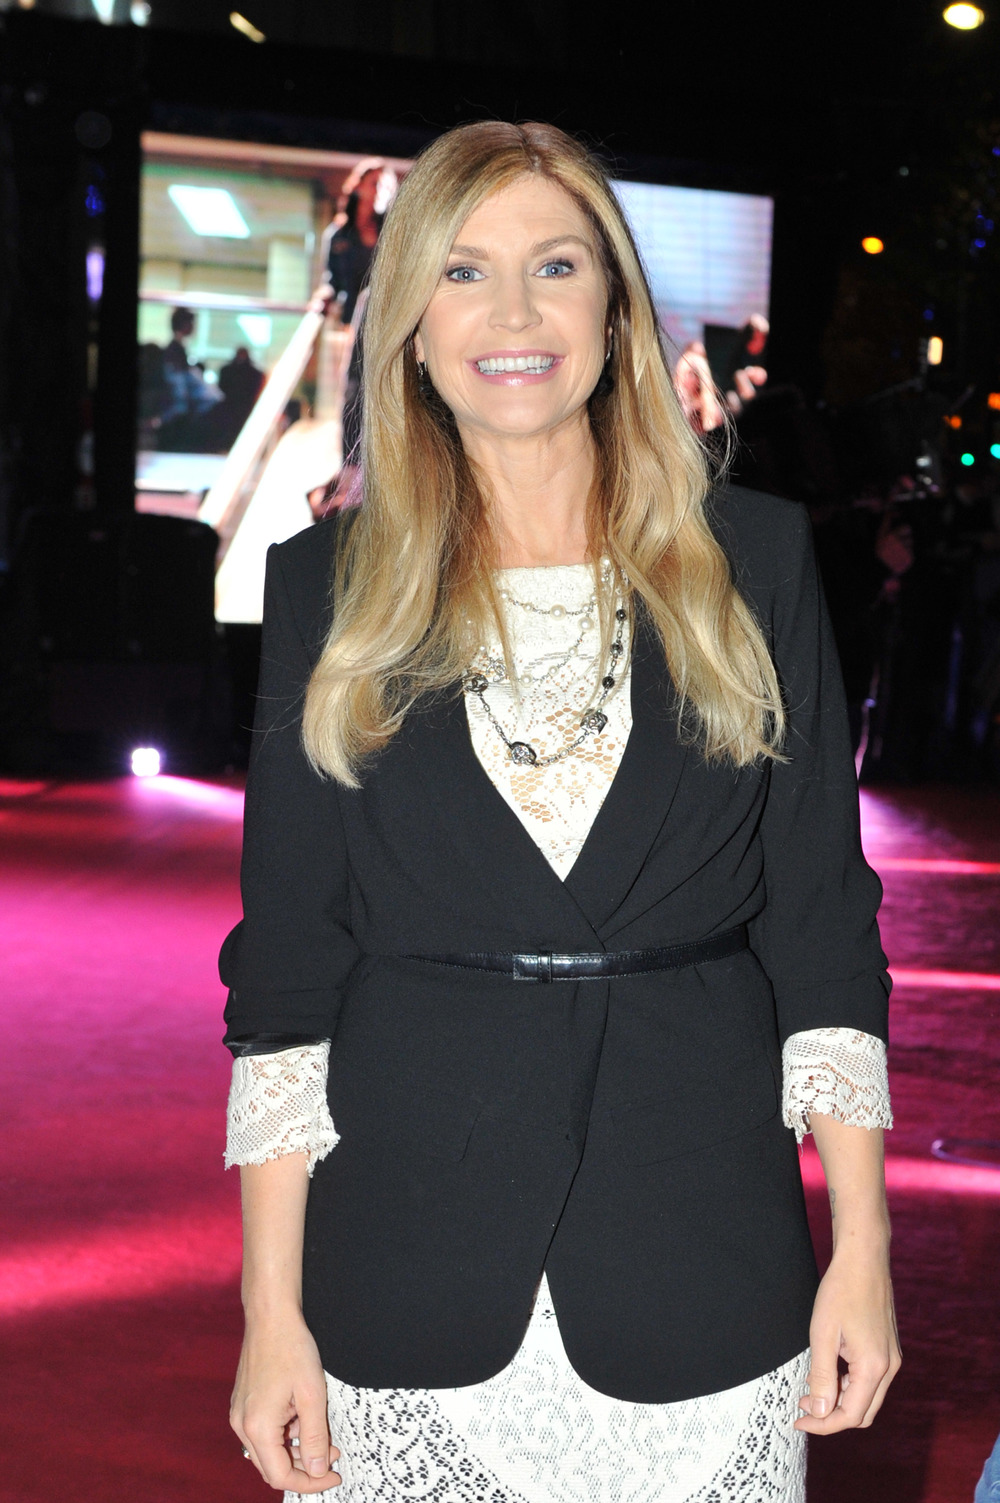 DUBLIN, IRELAND - DECEMBER 7: Yvonne Connolly attends the Dublin Premiere of 'Daddy's Home' at the Savoy Cinema on December 7, 2015 in Dublin, Ireland. (Photo by Clodagh Kilcoyne /Getty Images for Paramount Pictures)